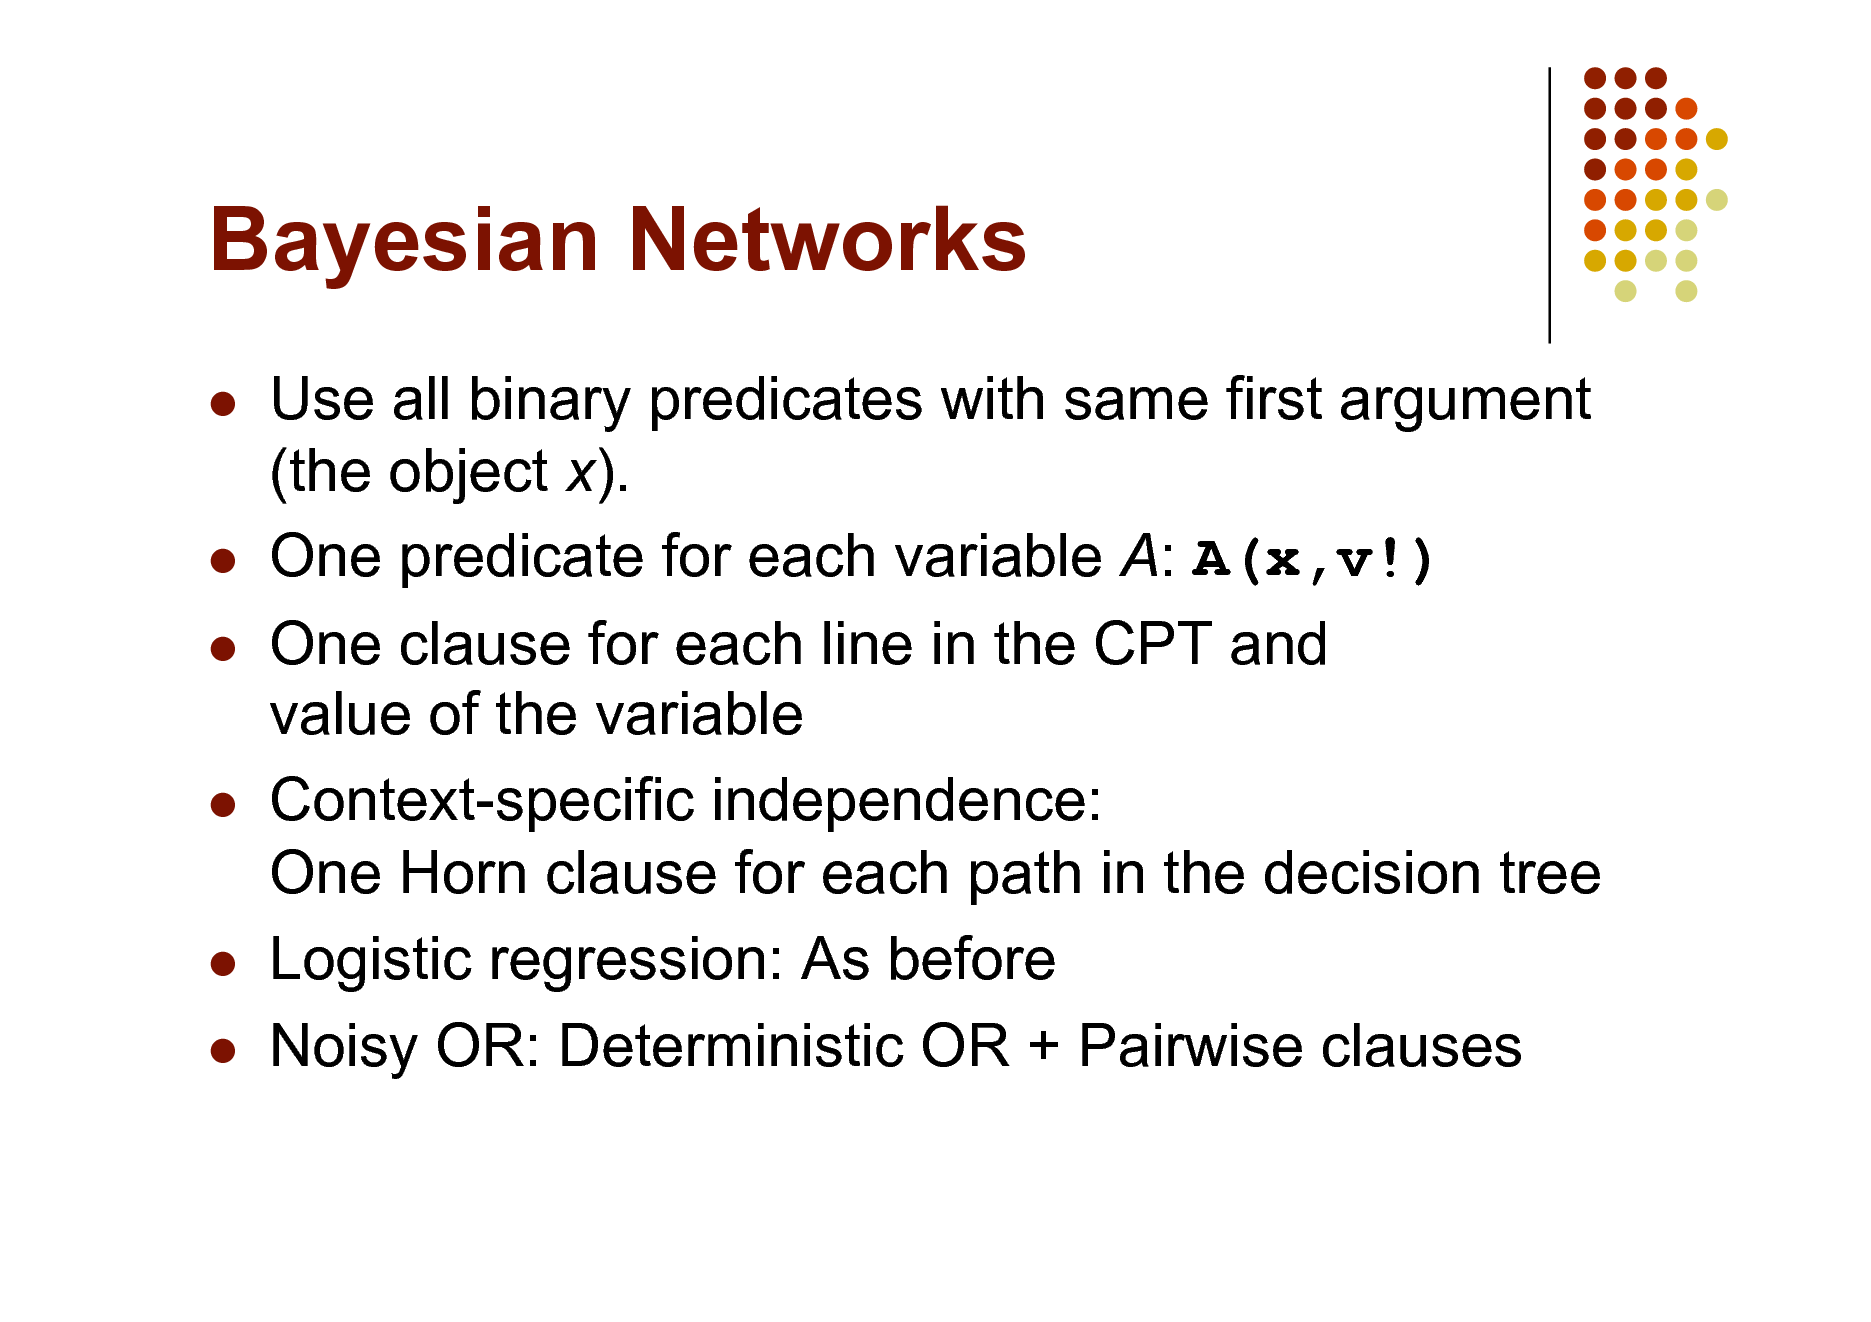 Slide: Bayesian Networks           Use all binary predicates with same first argument (the object x). One predicate for each variable A: A(x,v!) One clause for each line in the CPT and value of the variable Context-specific independence: One Horn clause for each path in the decision tree Logistic regression: As before Noisy OR: Deterministic OR + Pairwise clauses